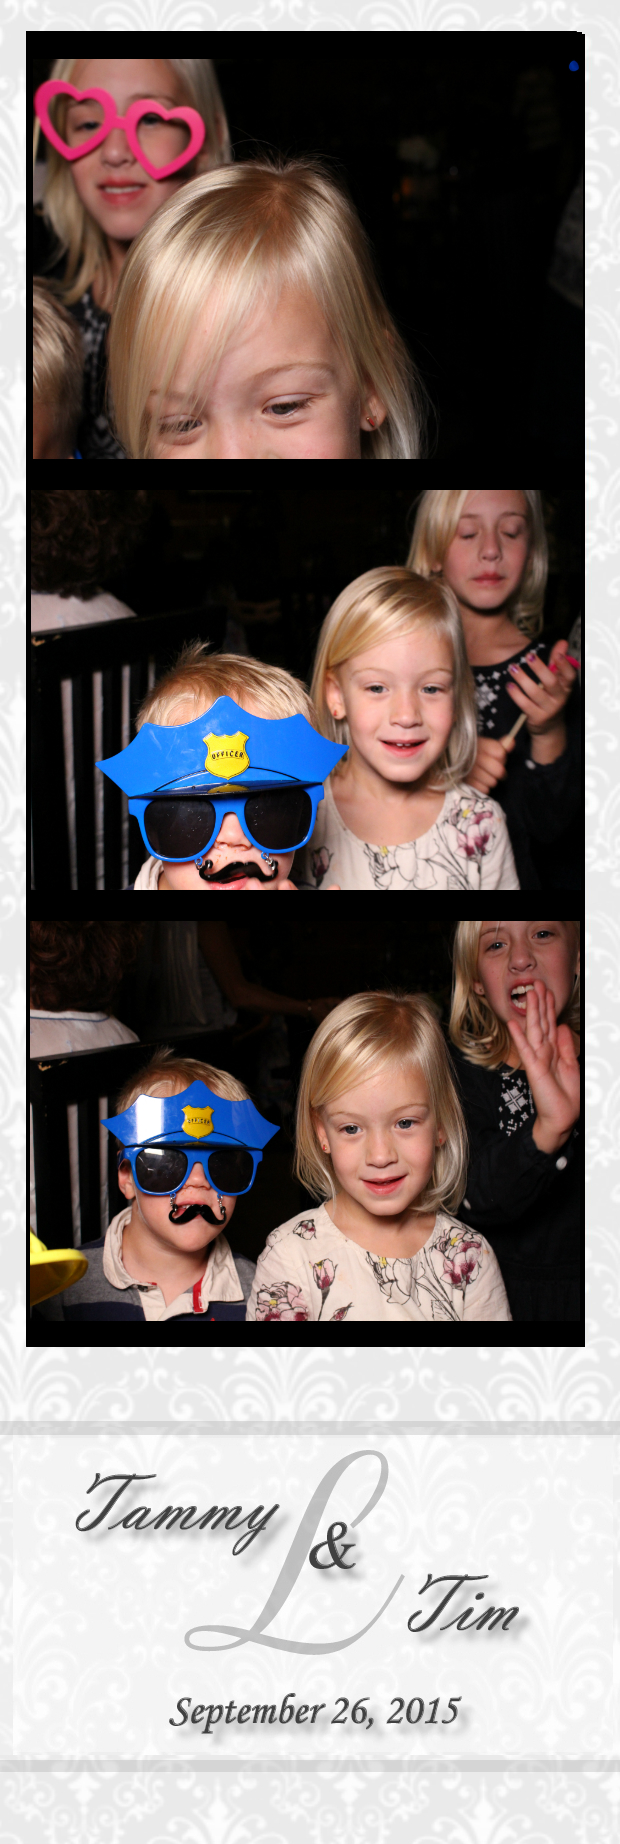 Guest House Events Photo Booth Strips T&T (16).jpg